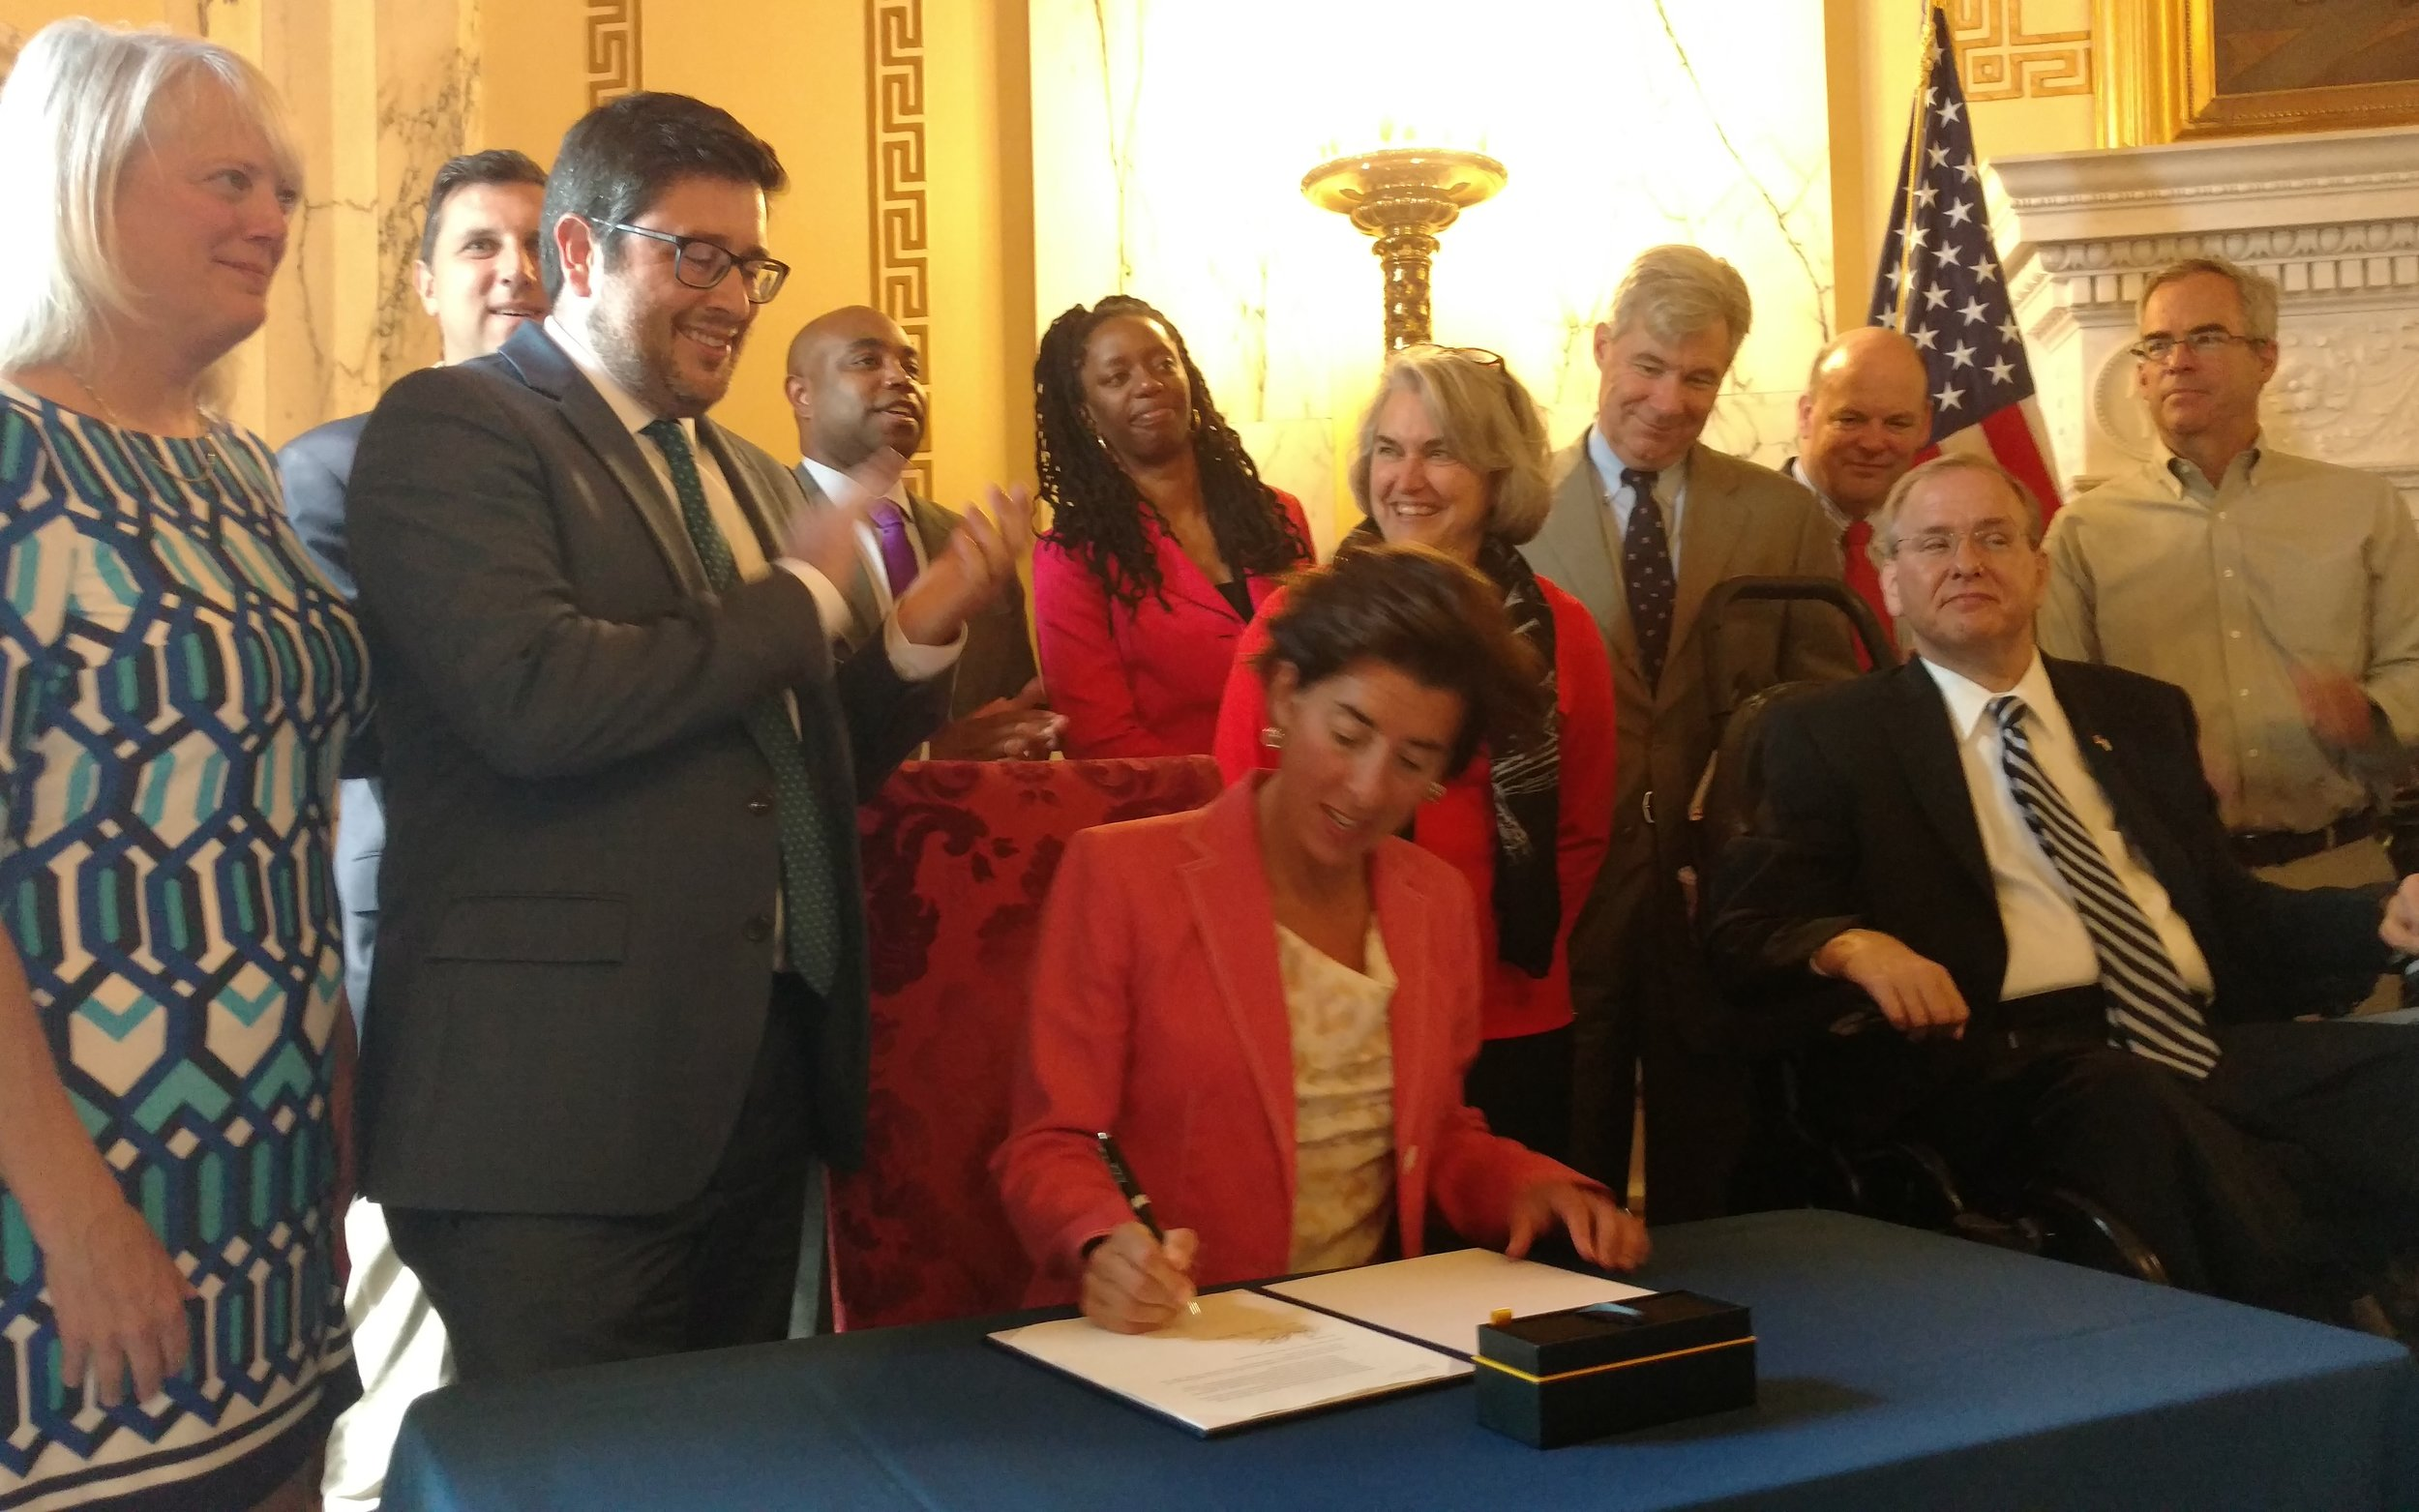 Gov. Gina Raimondo signs the Stand Up To Climate Change Executive Order.